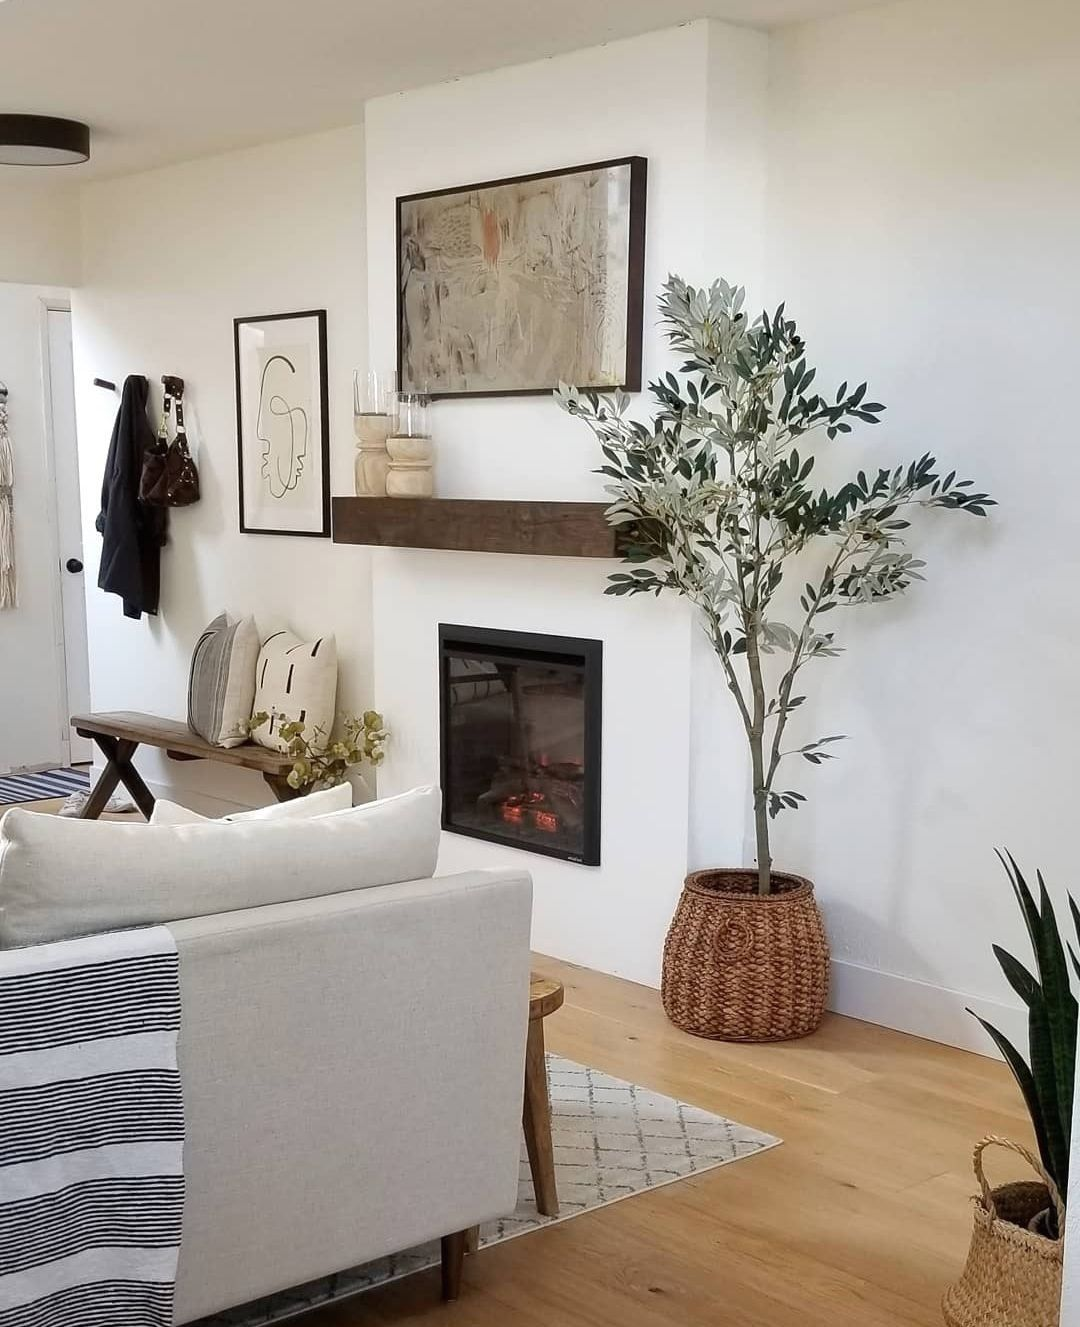 DIY Electric Fireplace HowTo Tutorial Kismet House